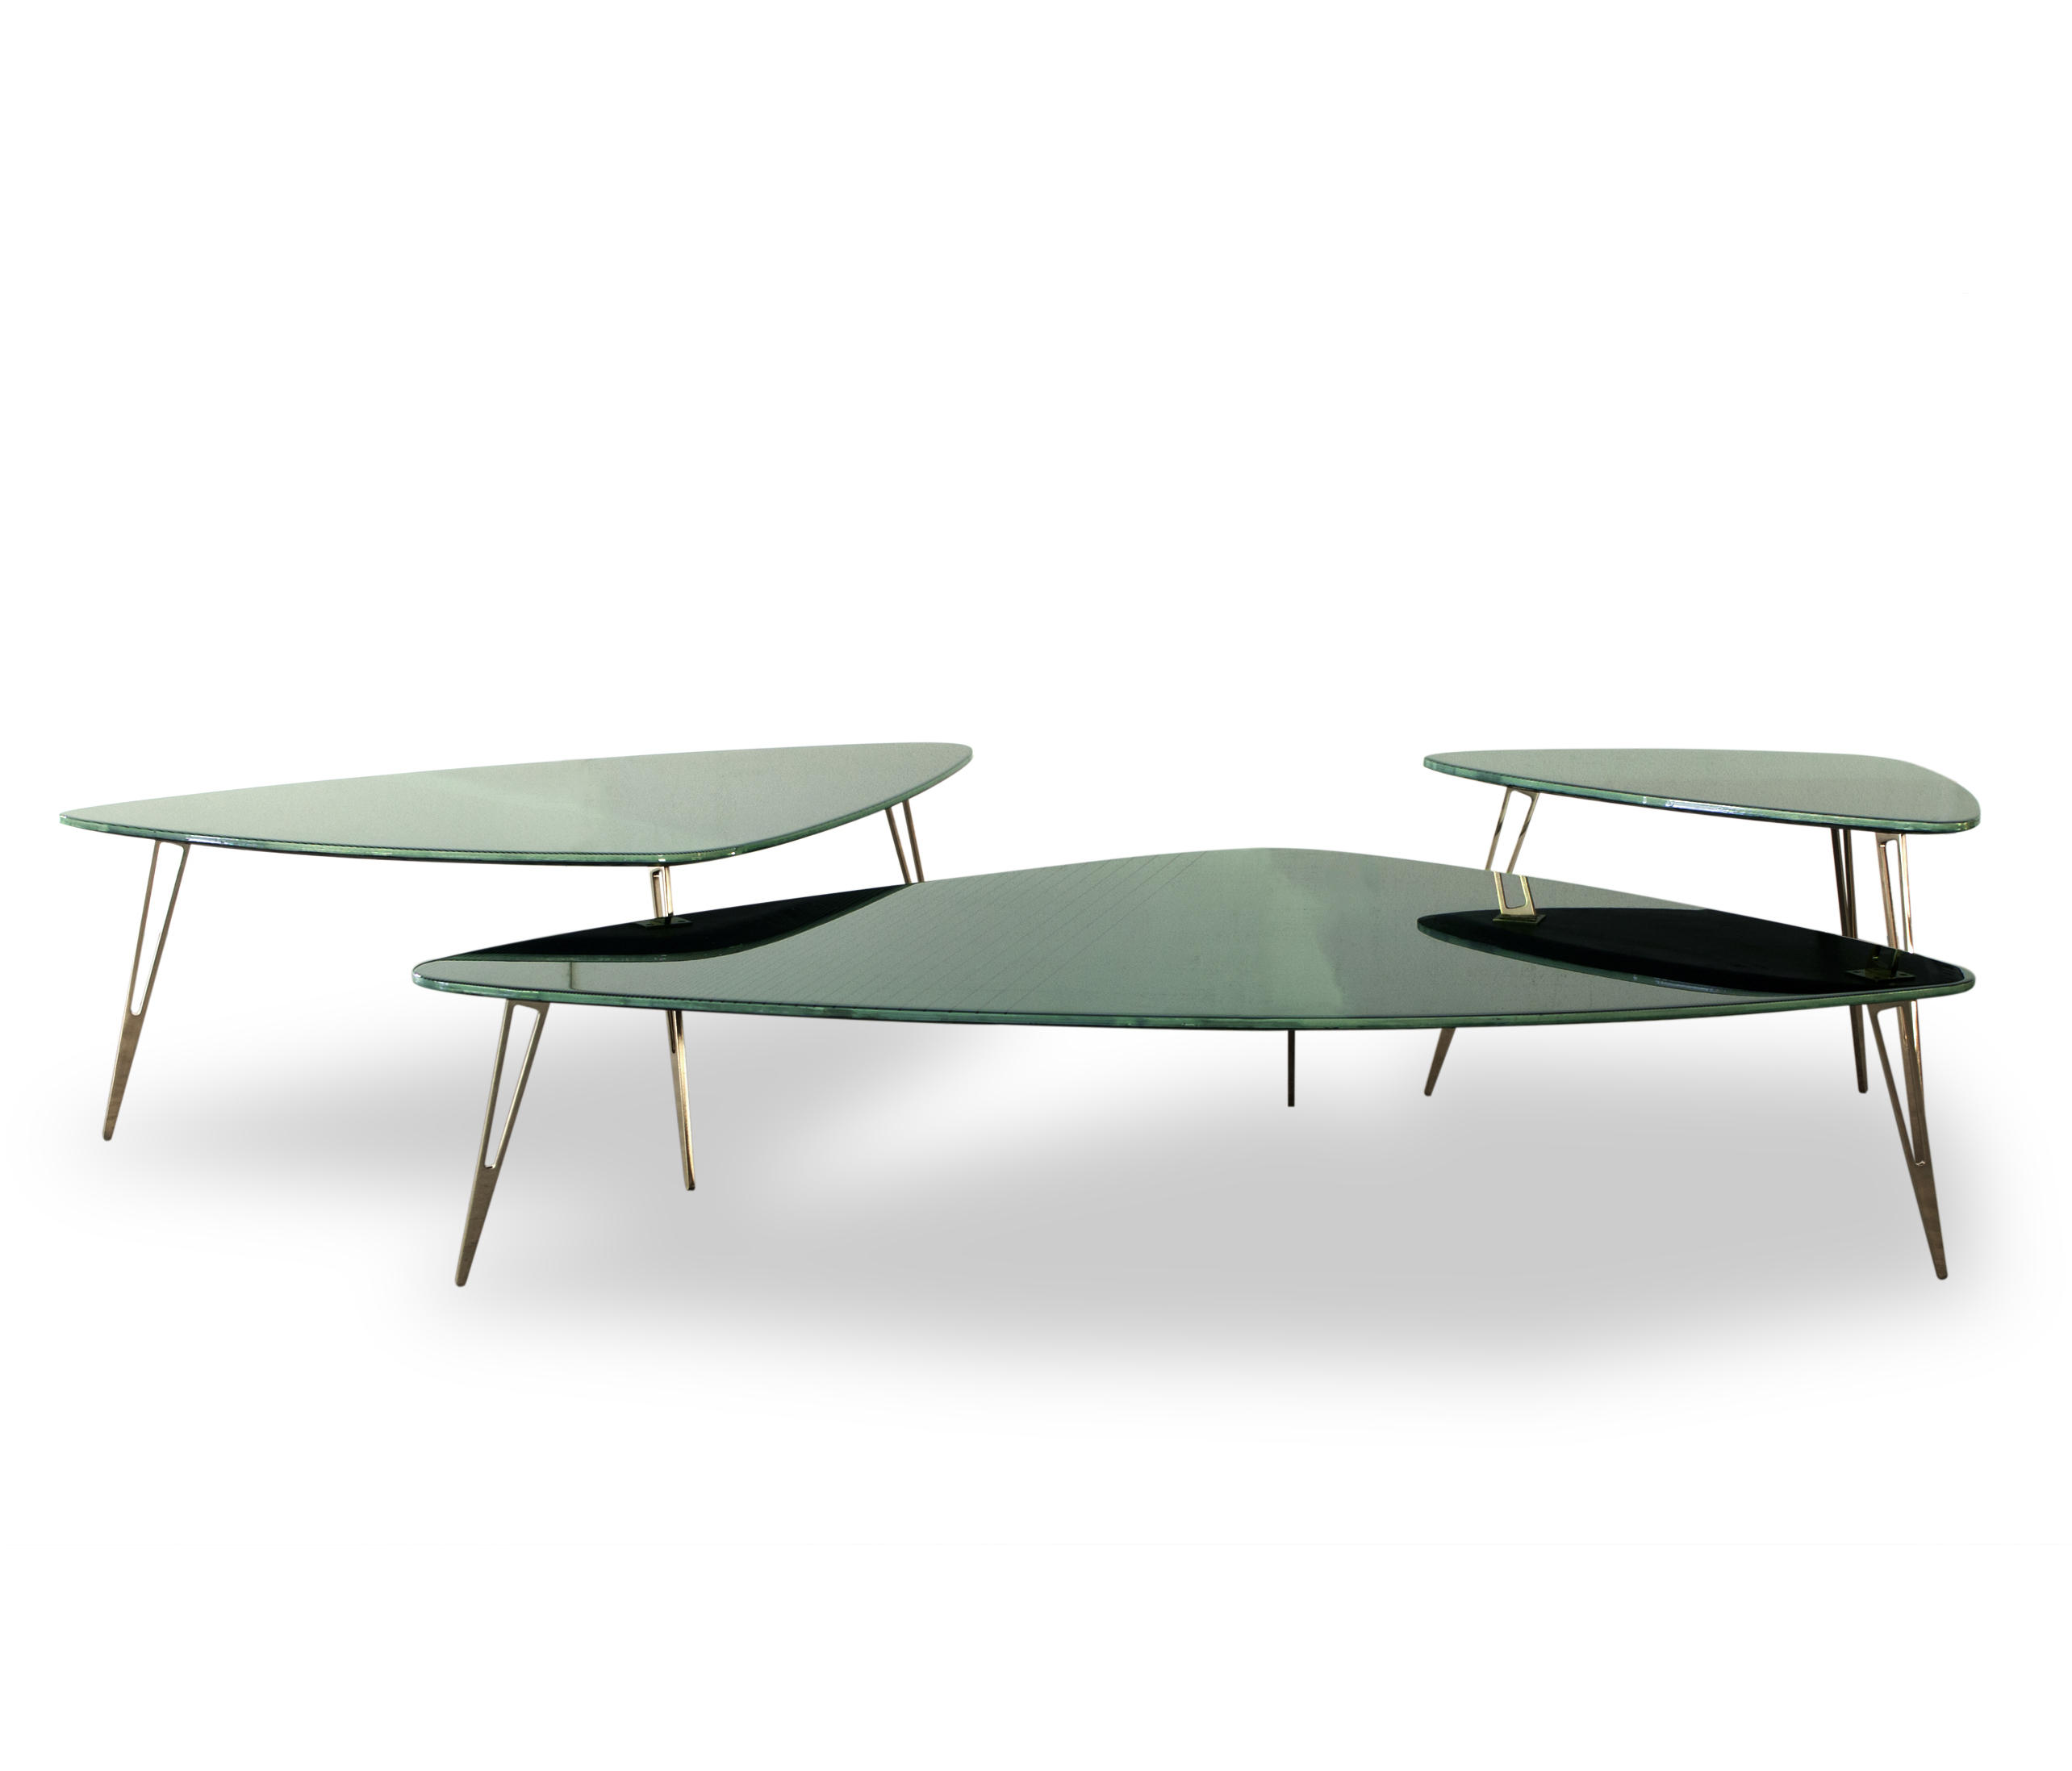 Liquid organique small table side tables from baxter for Architecture organique